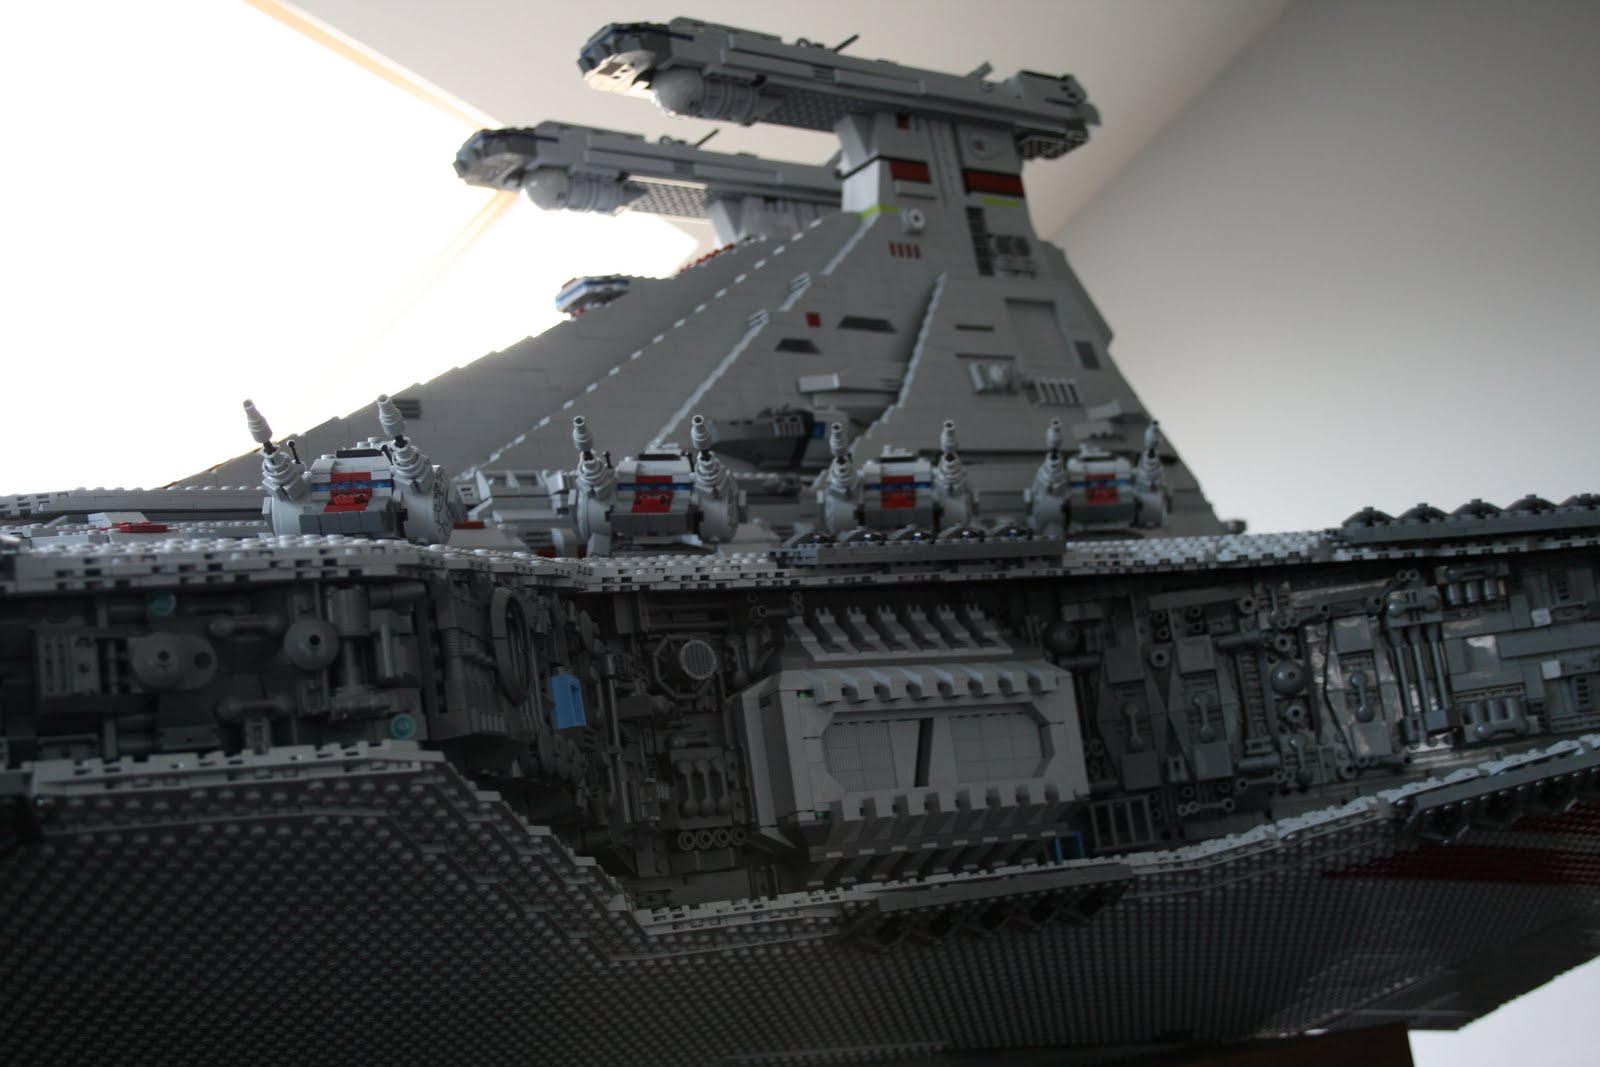 lego star destroyer - photo #33